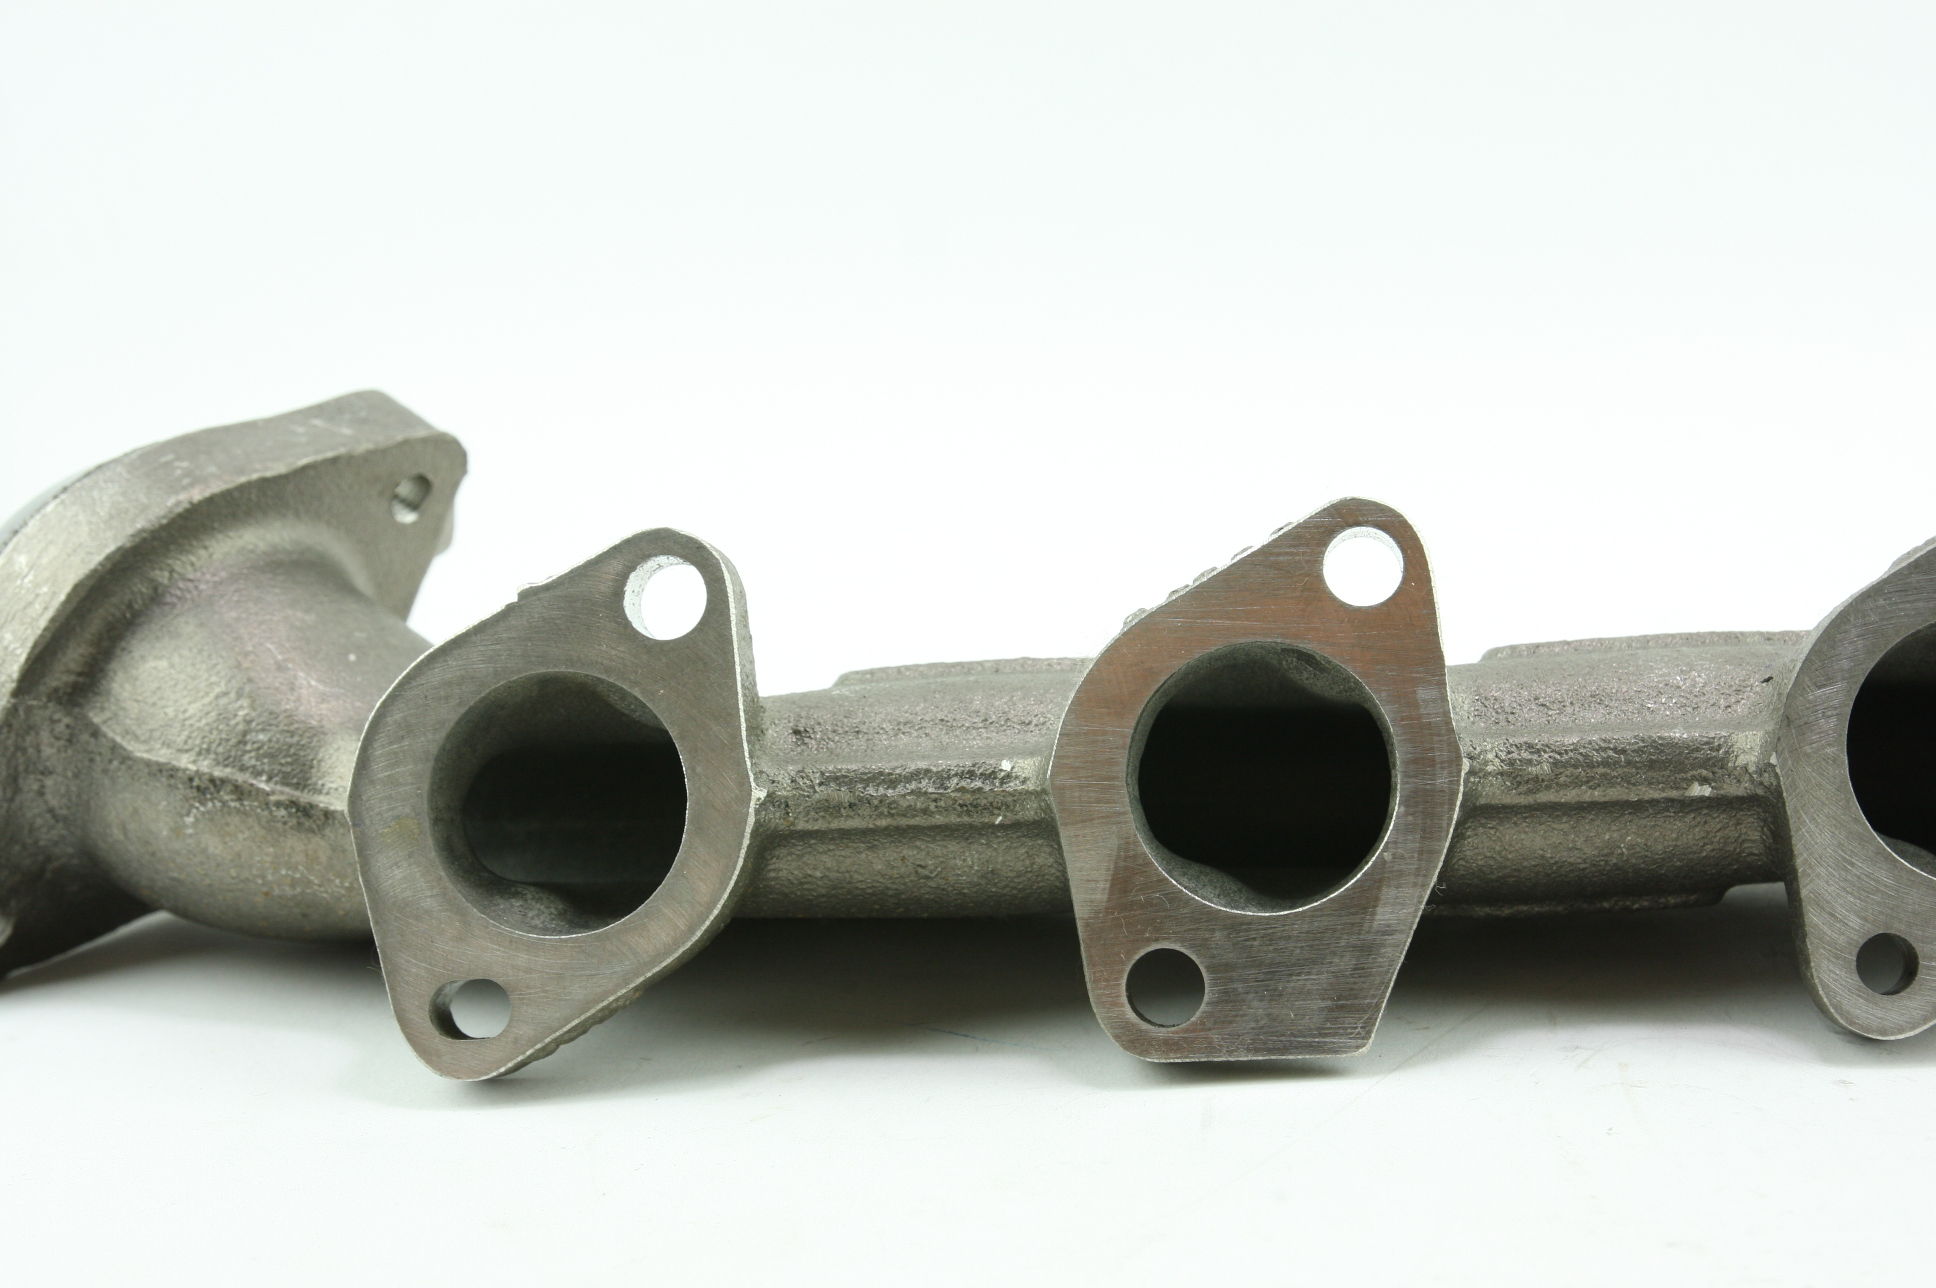 * New OEM YC2Z9430AA Ford 00-14 Super Duty 6.8L V10 Exhaust Manifold Free Ship! - image 3